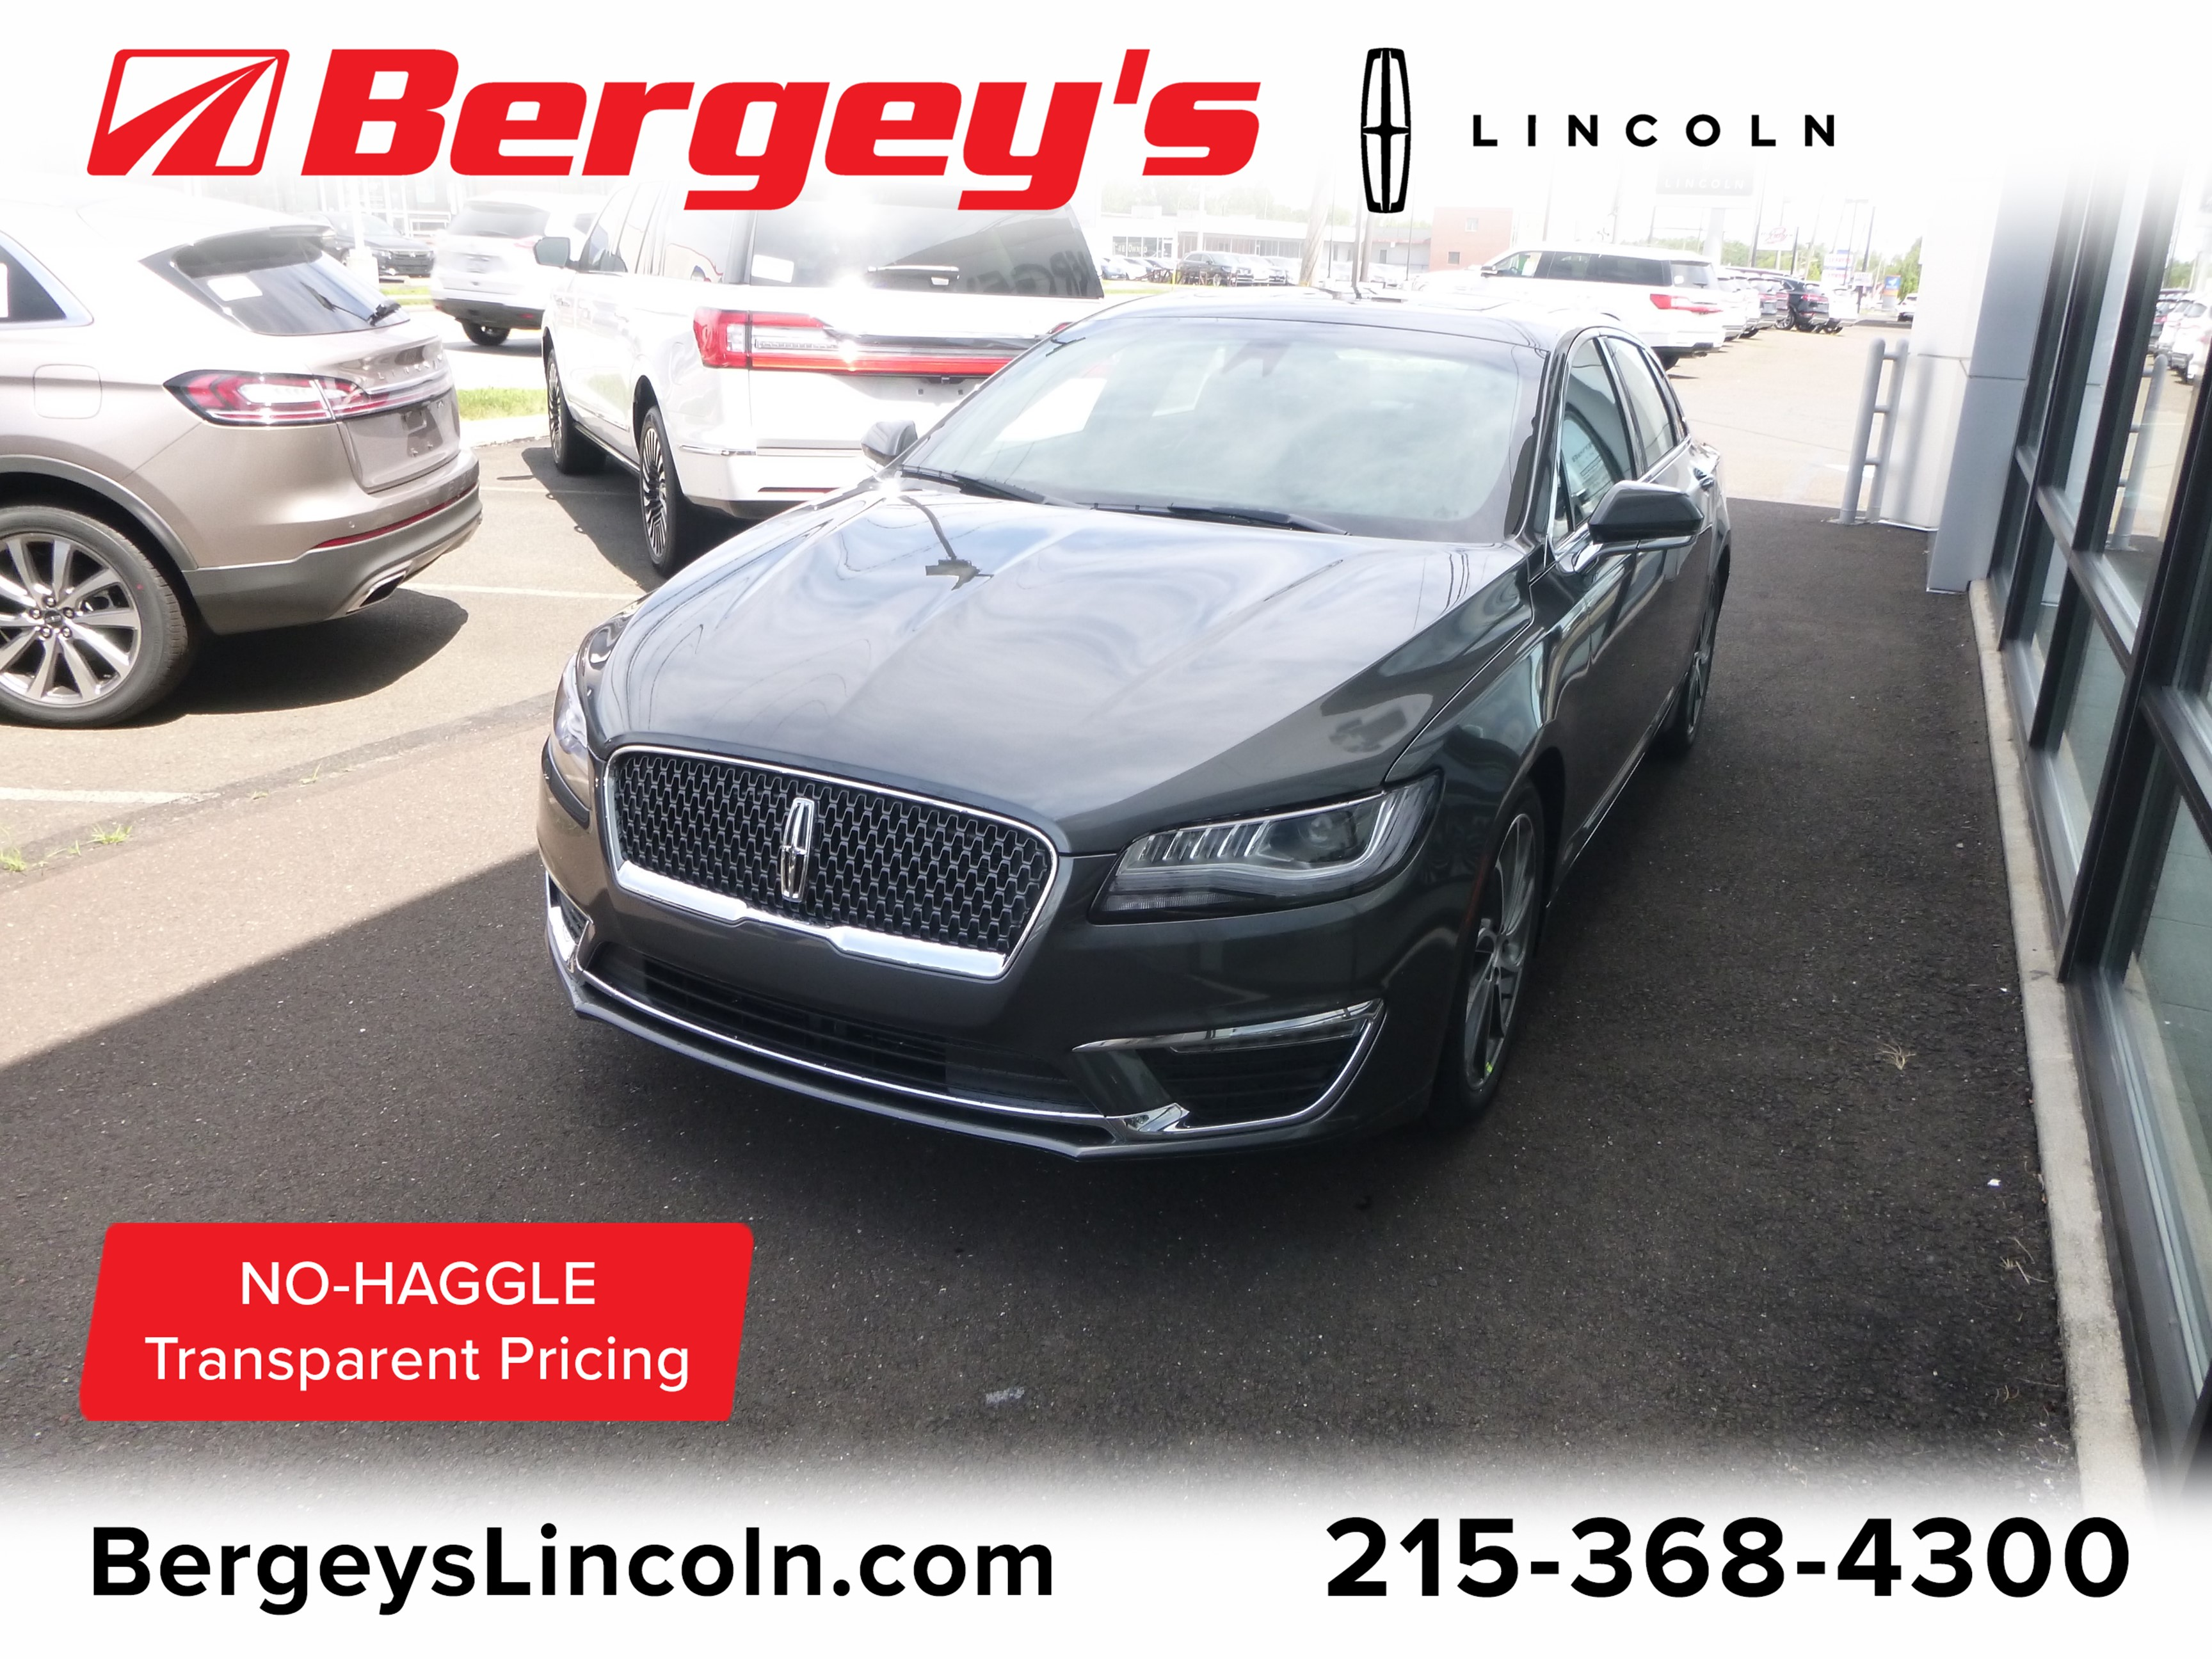 2019 Lincoln MKZ For Sale in Souderton PA | Bergey's Auto